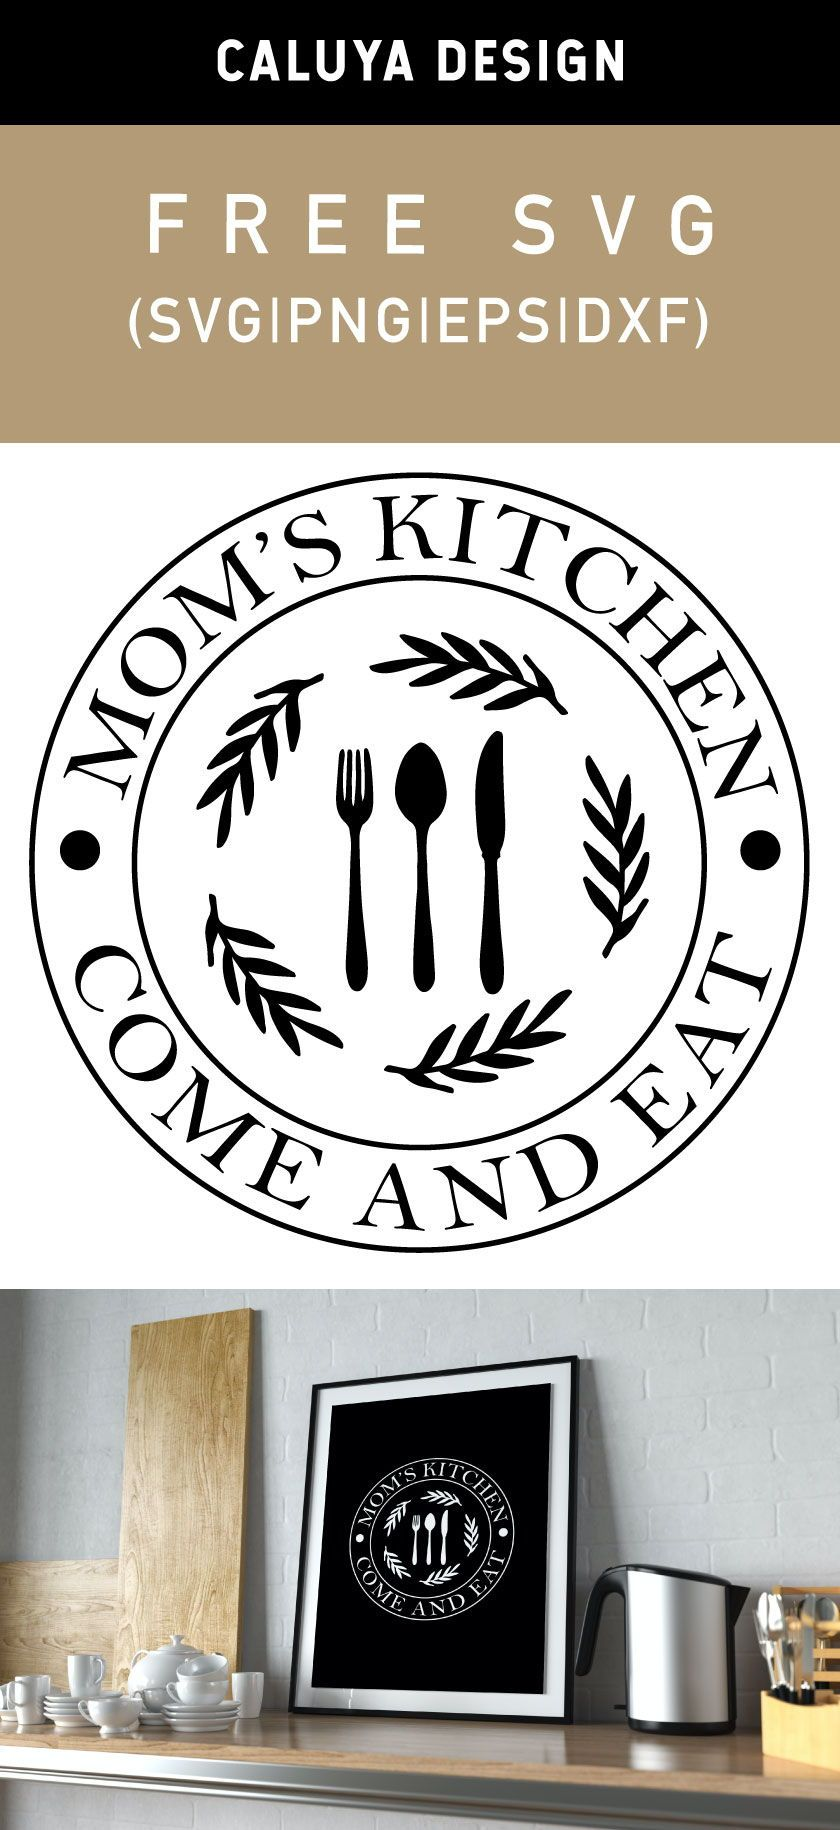 Free Mom's Kitchen SVG, PNG, EPS & DXF by Caluya Design